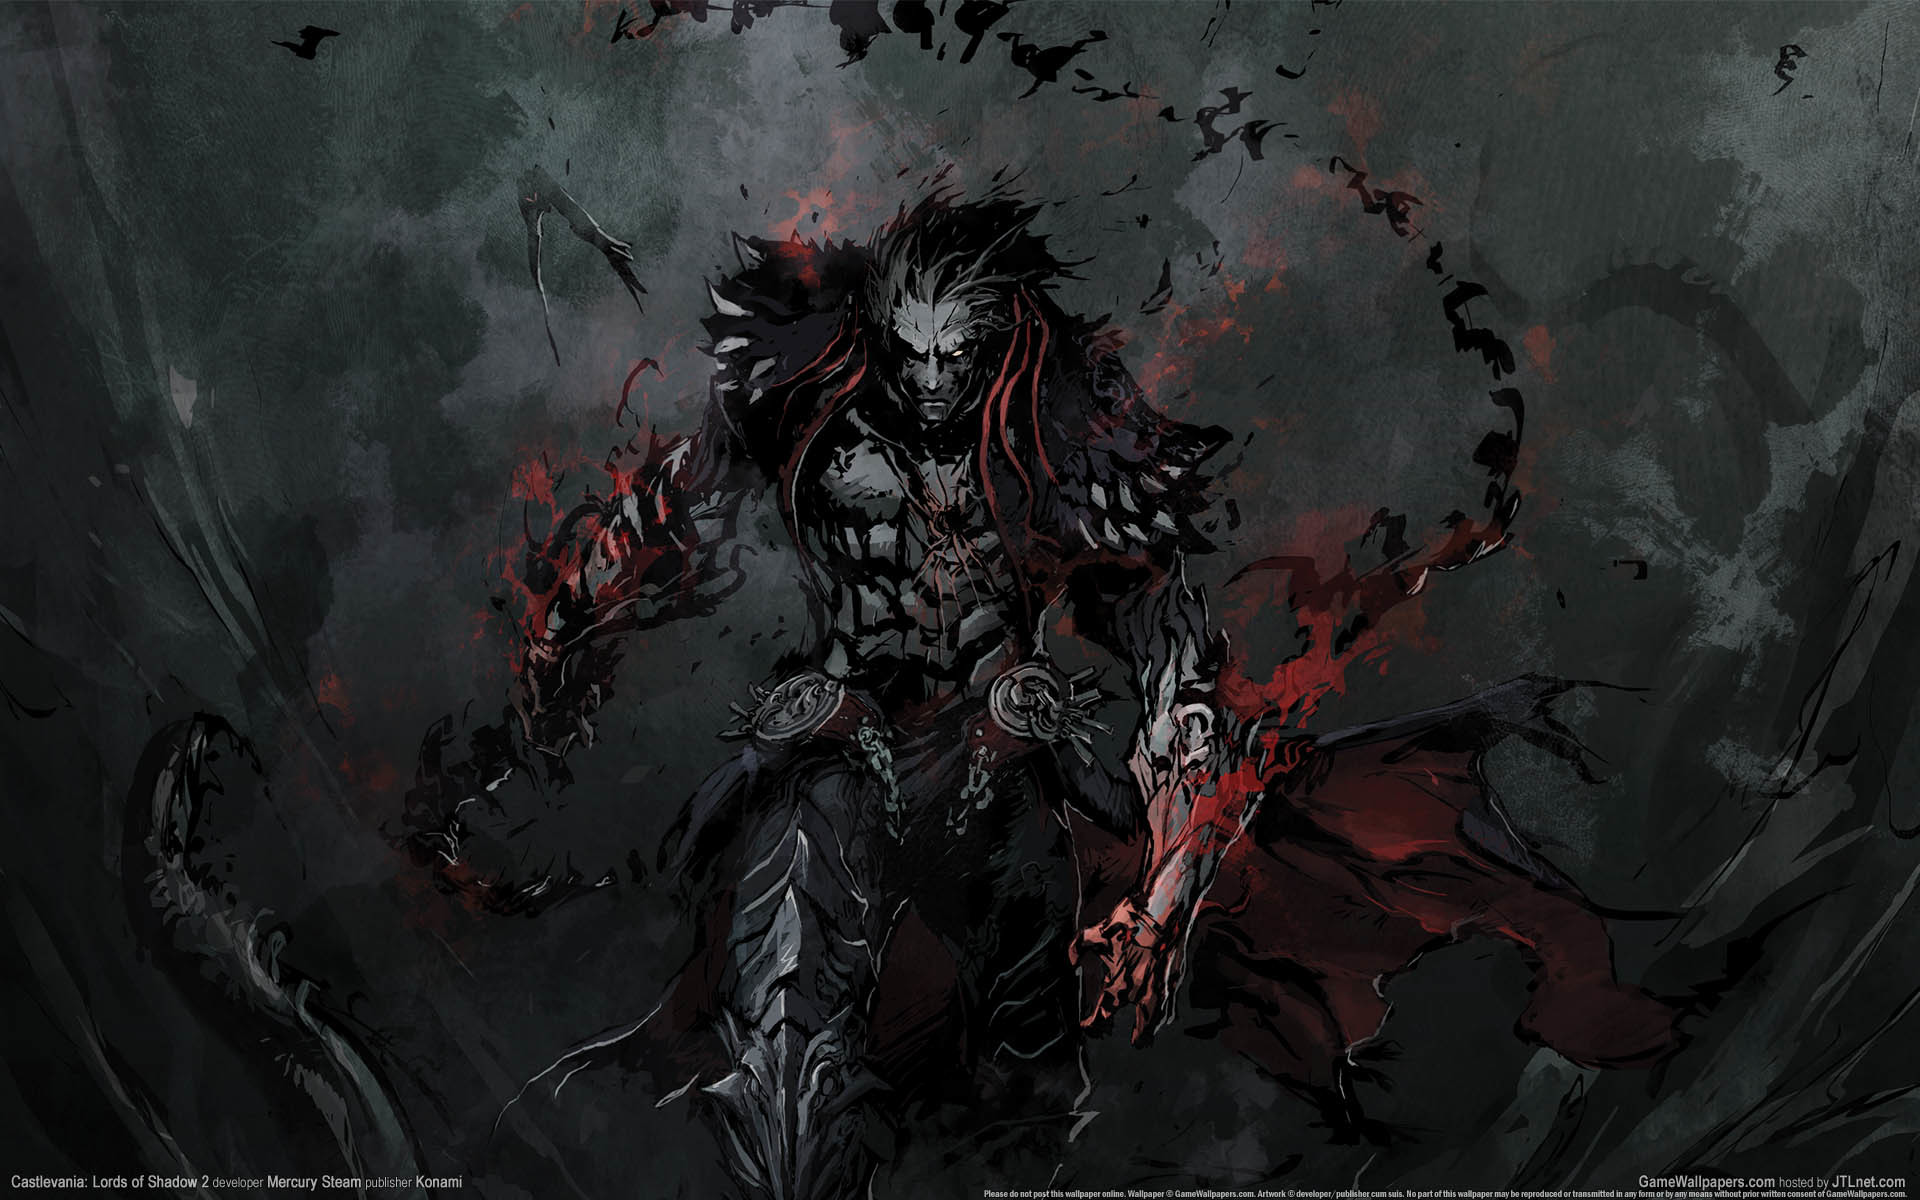 1920x1080 Preview Wallpaper Castlevania Lords Of Shadow Mirror Fate Gabriel Belmont Dracula